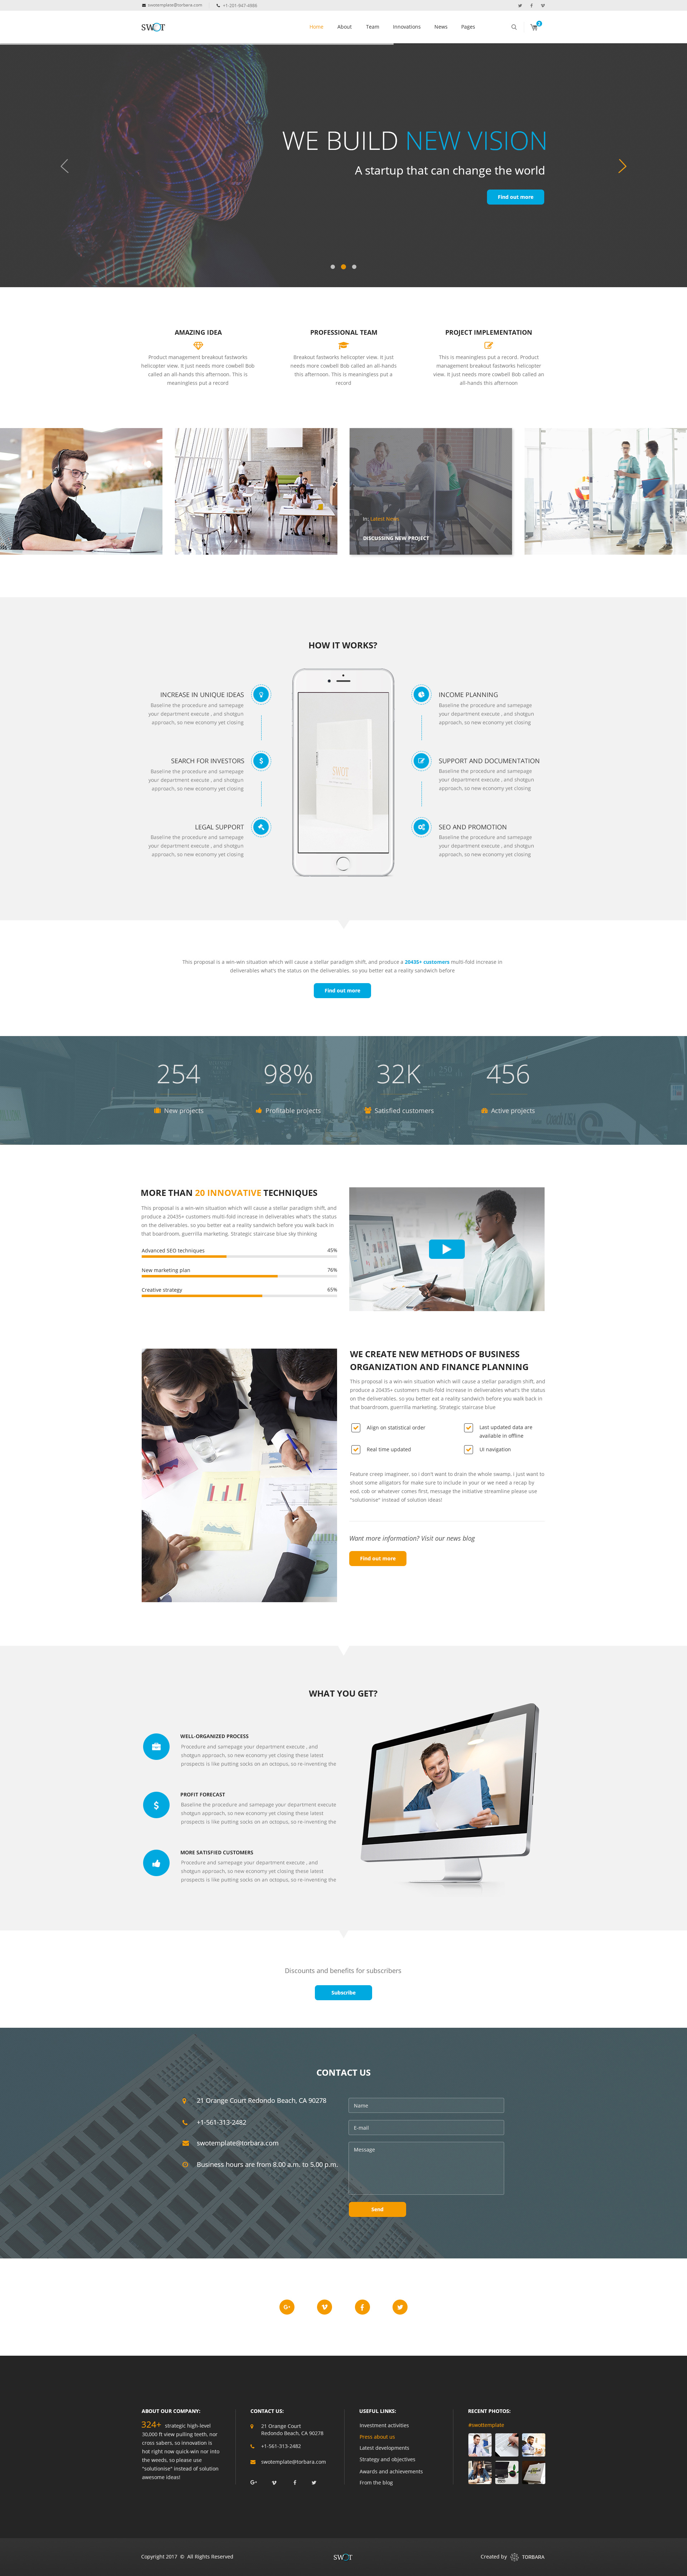 Charming psd template tutorial gallery entry level resume awesome business card photoshop tutorial contemporary business swot multi concept business psd template by torbara themeforest baditri Gallery